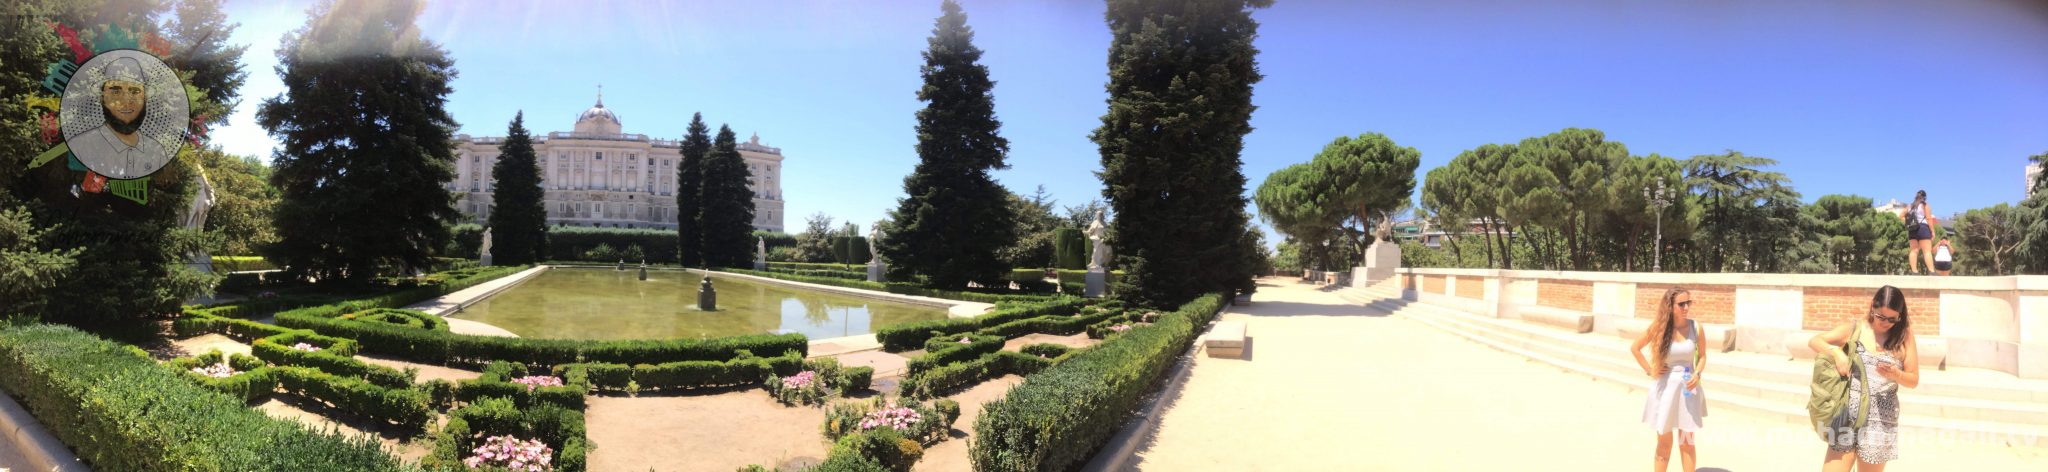 Amazing view on Royal Palace behind the Sabatini Gardens